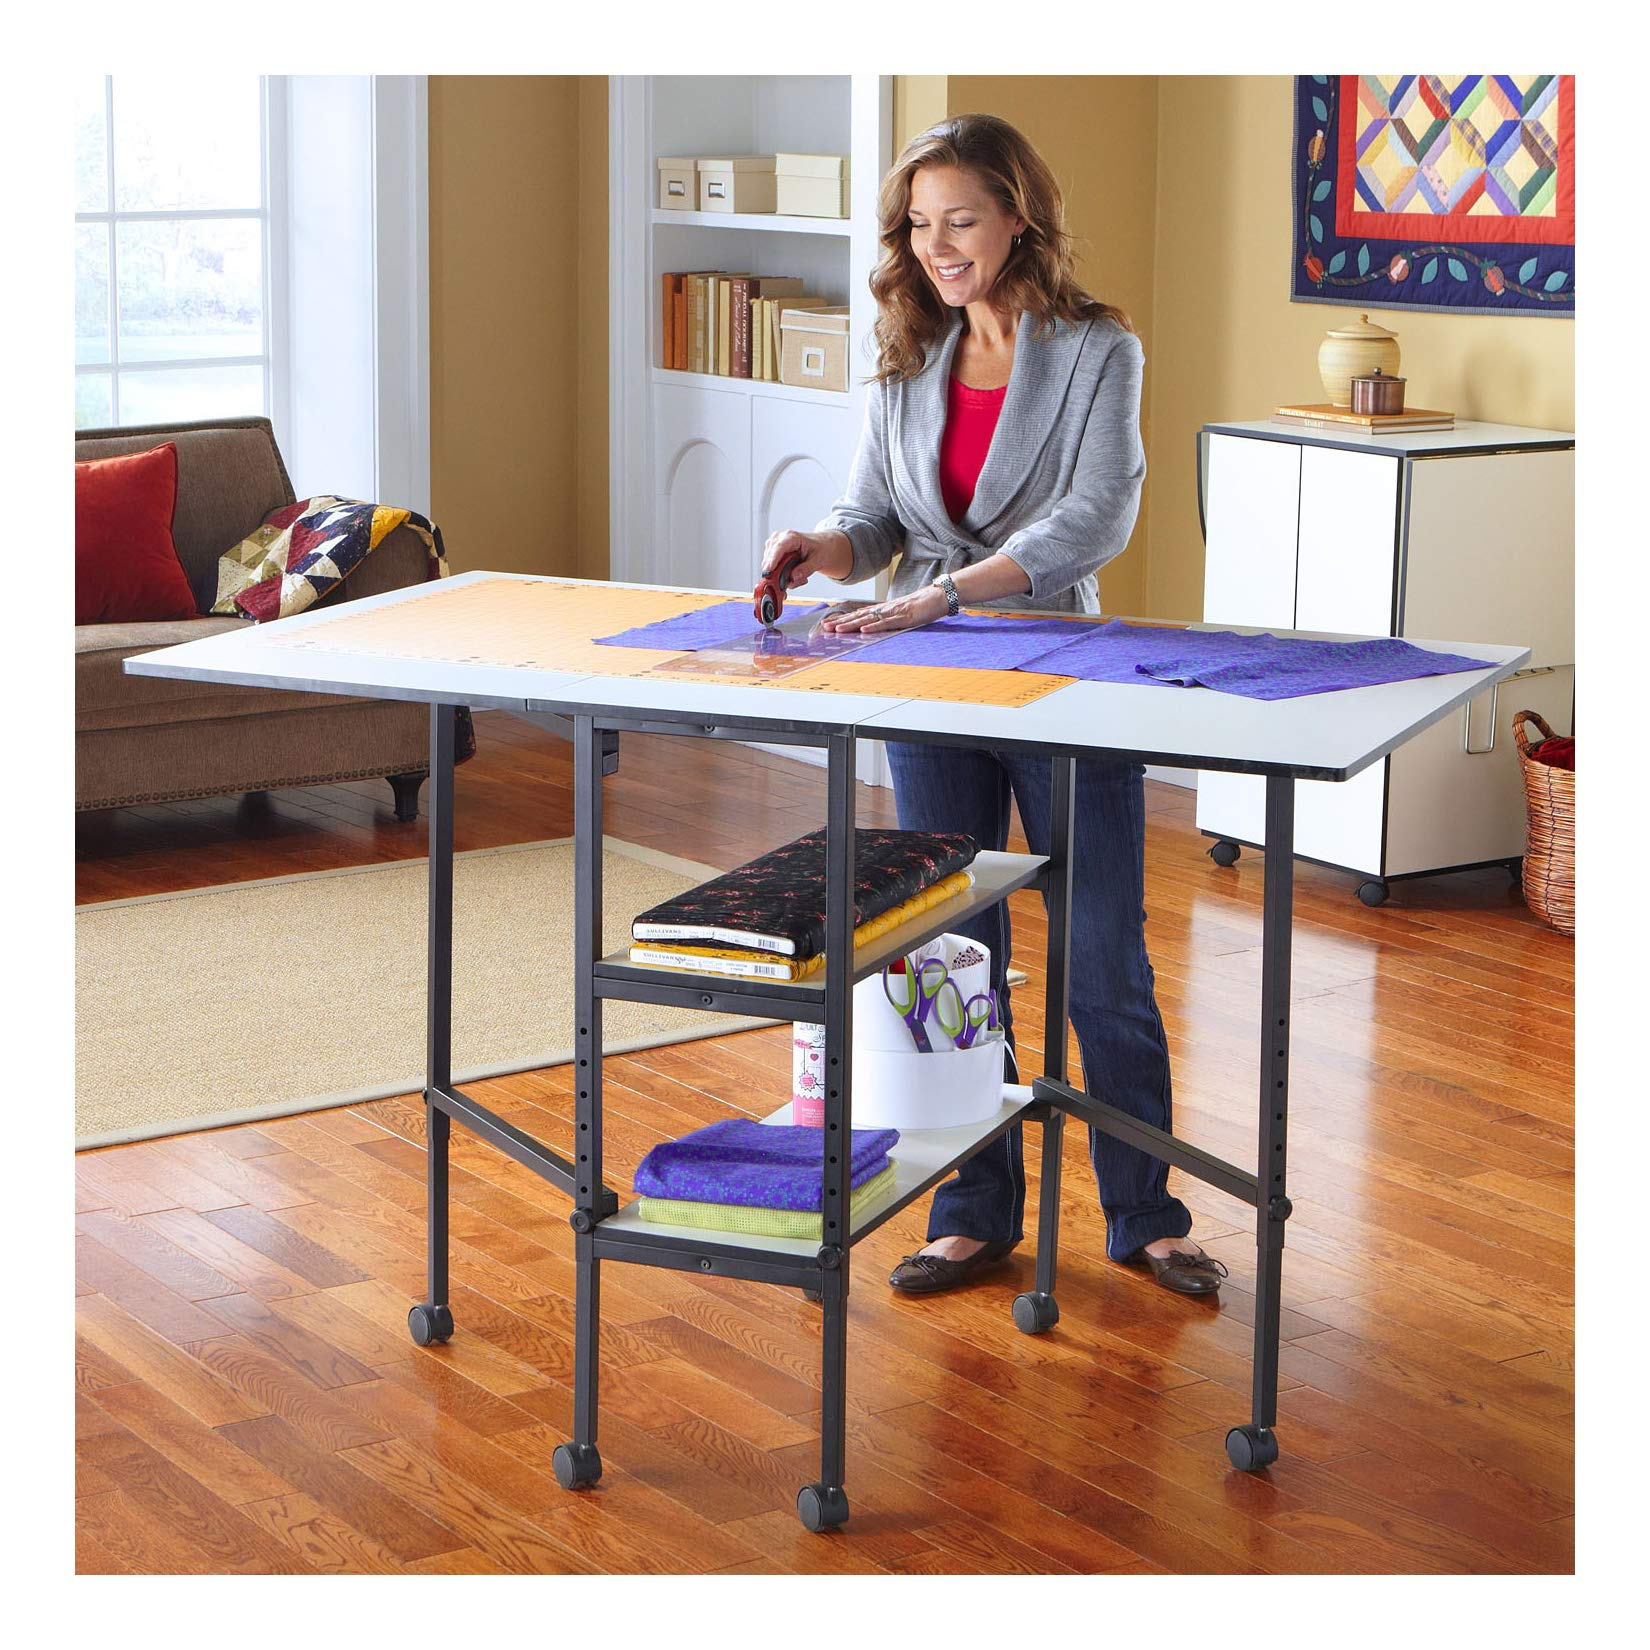 Sullivans Adjustable Home Hobby Table by Sullivans (Image #1)